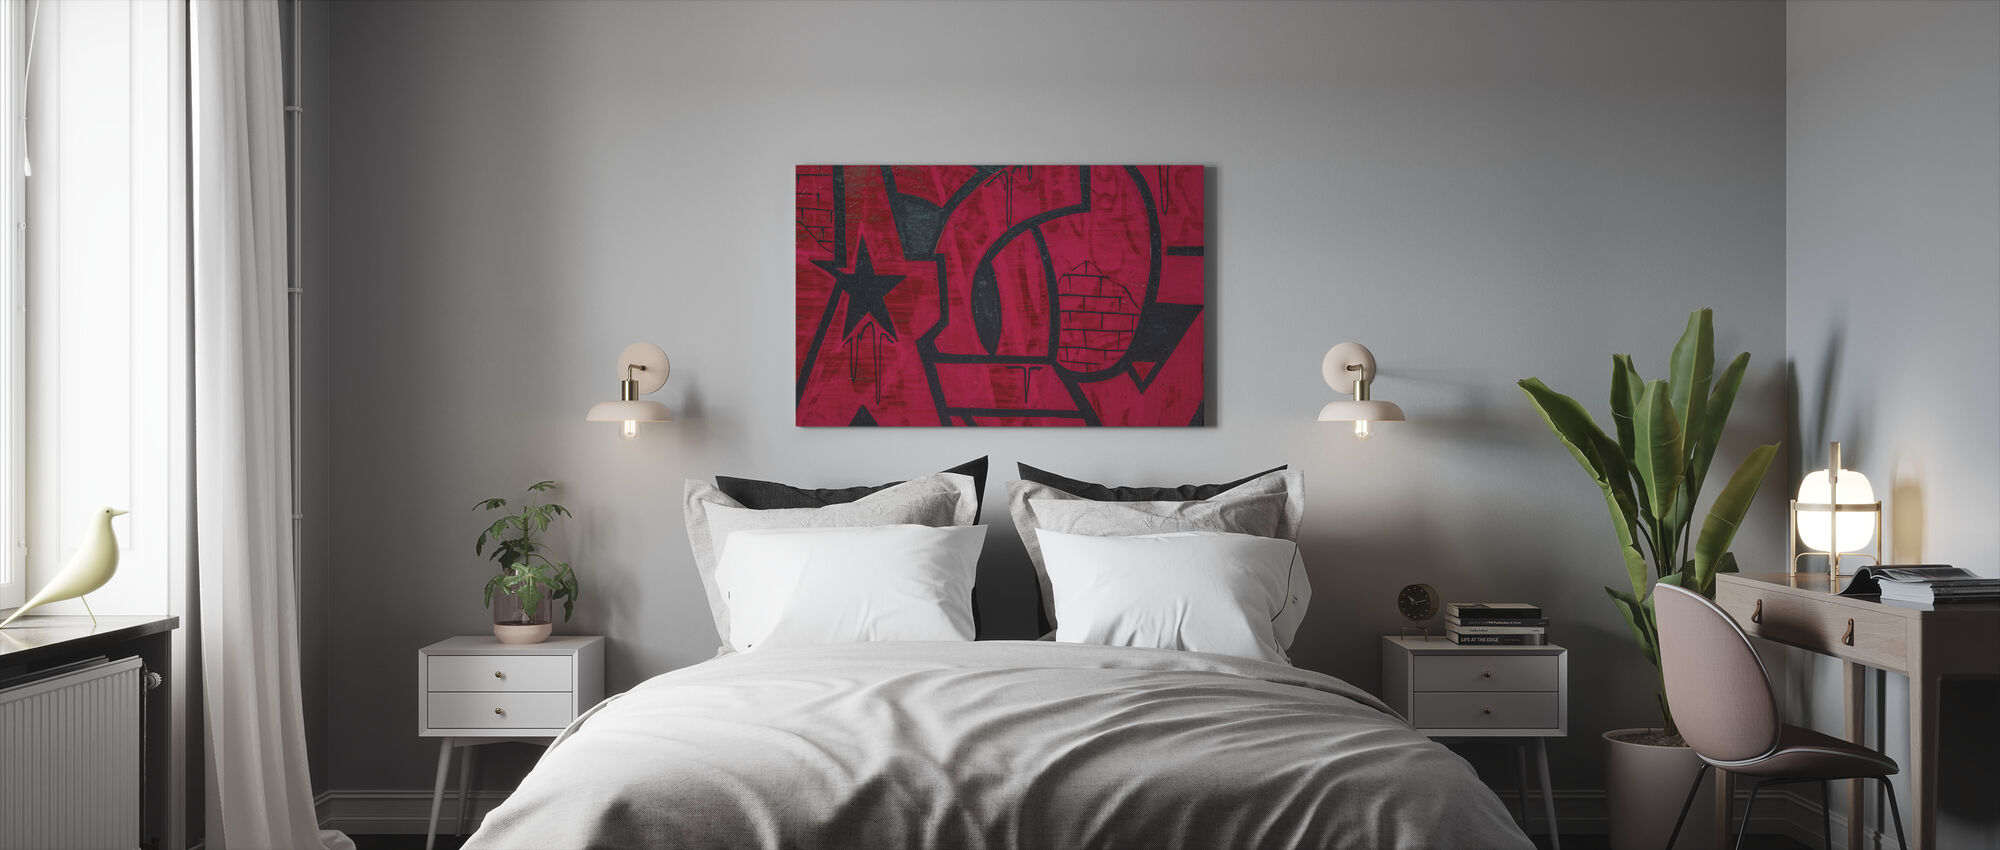 Red Detail from Graffiti Wall - Canvas print - Bedroom